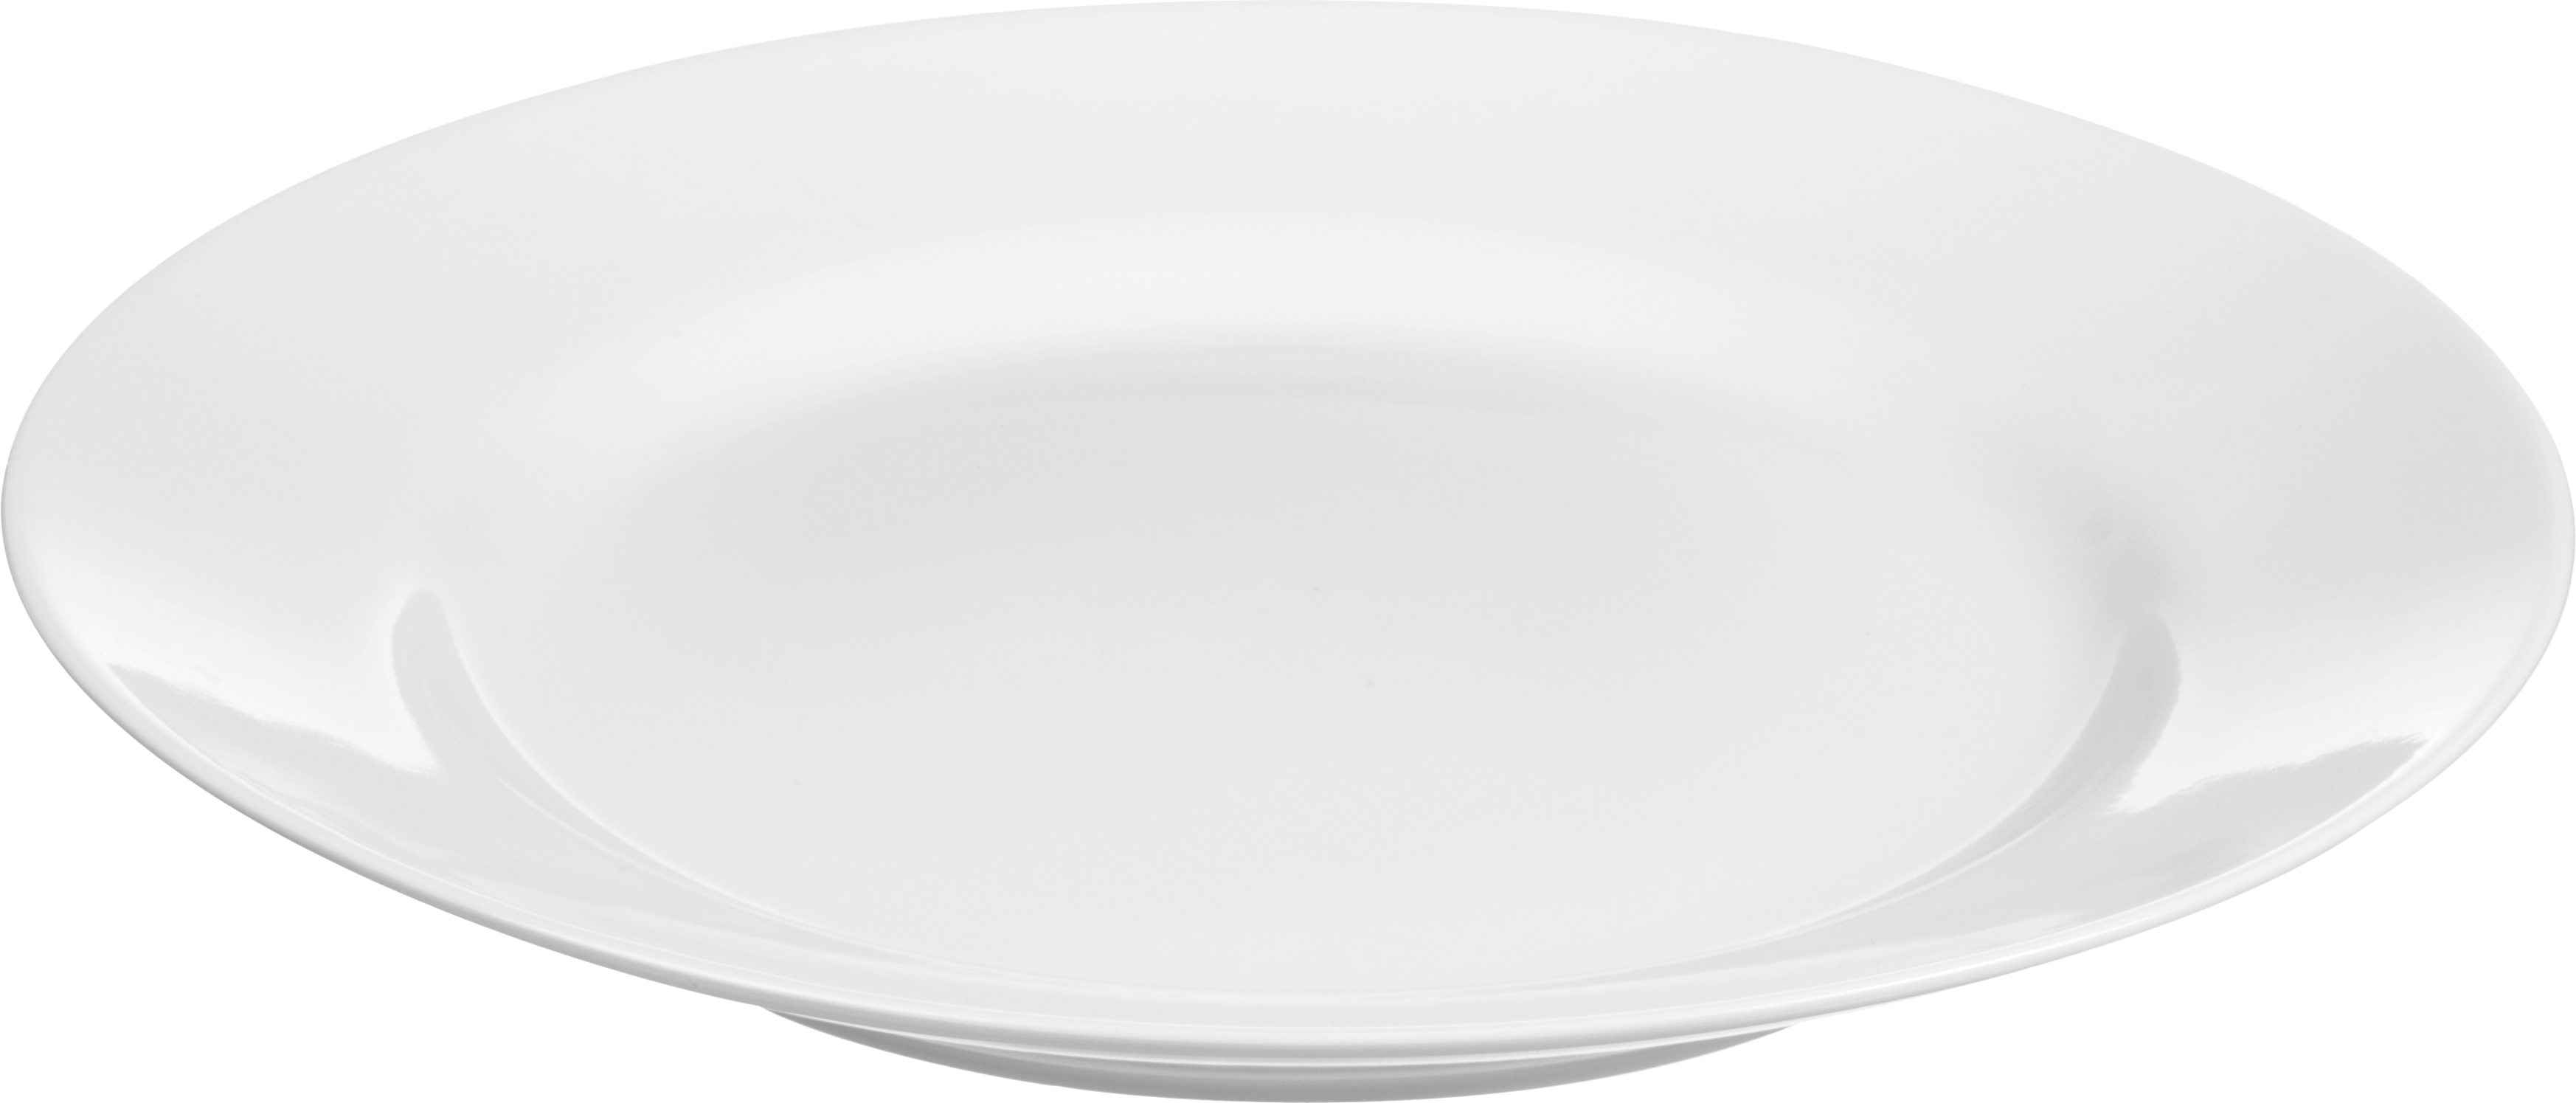 Dinner plate png. Plates photo images free